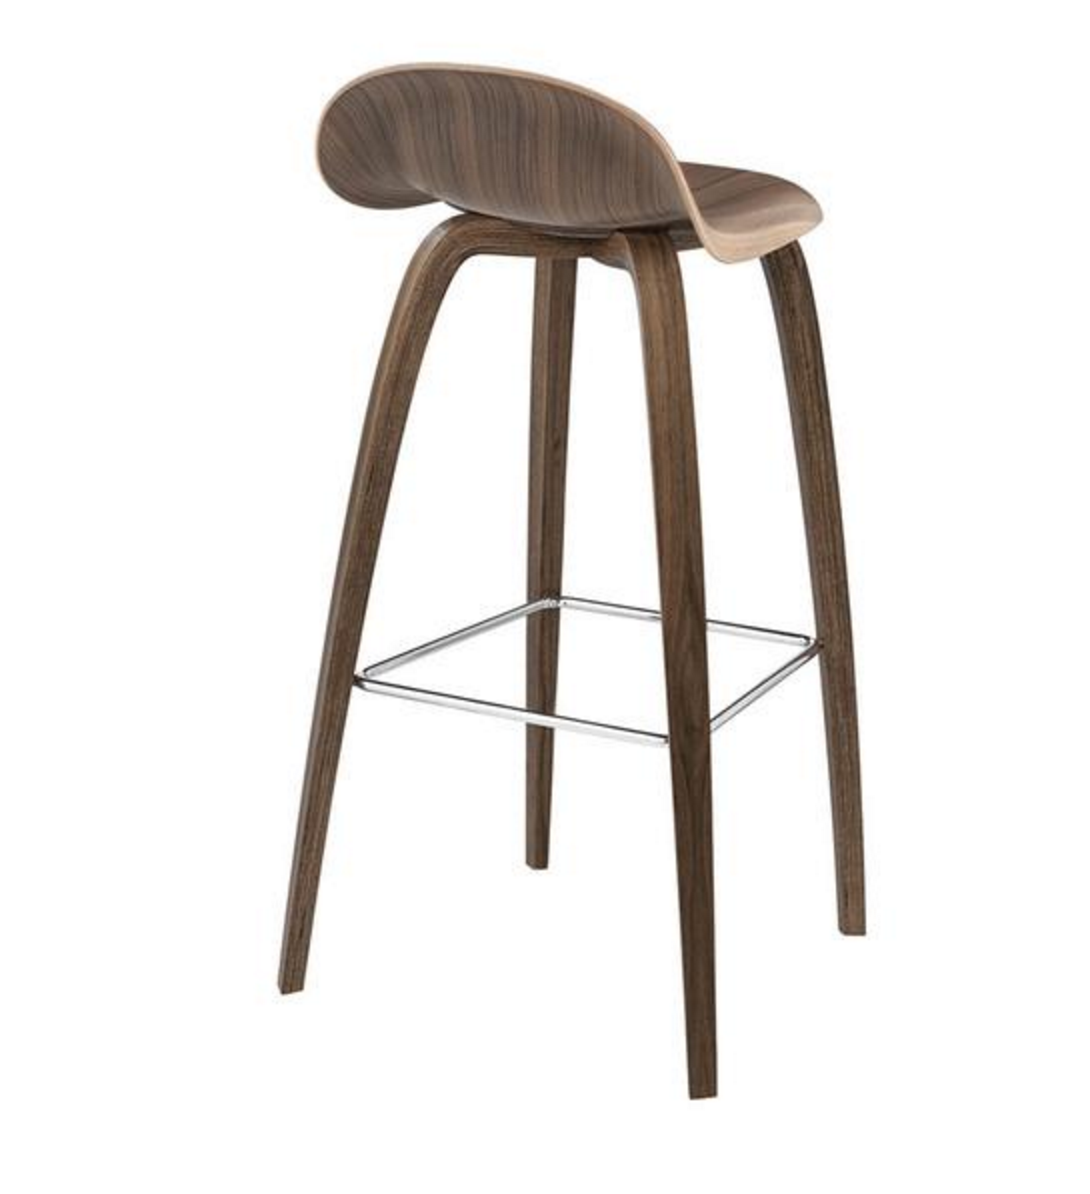 3D Bar Stool - Un-upholstered - 75 cm Center Black base, American Walnut shell fra GUBI